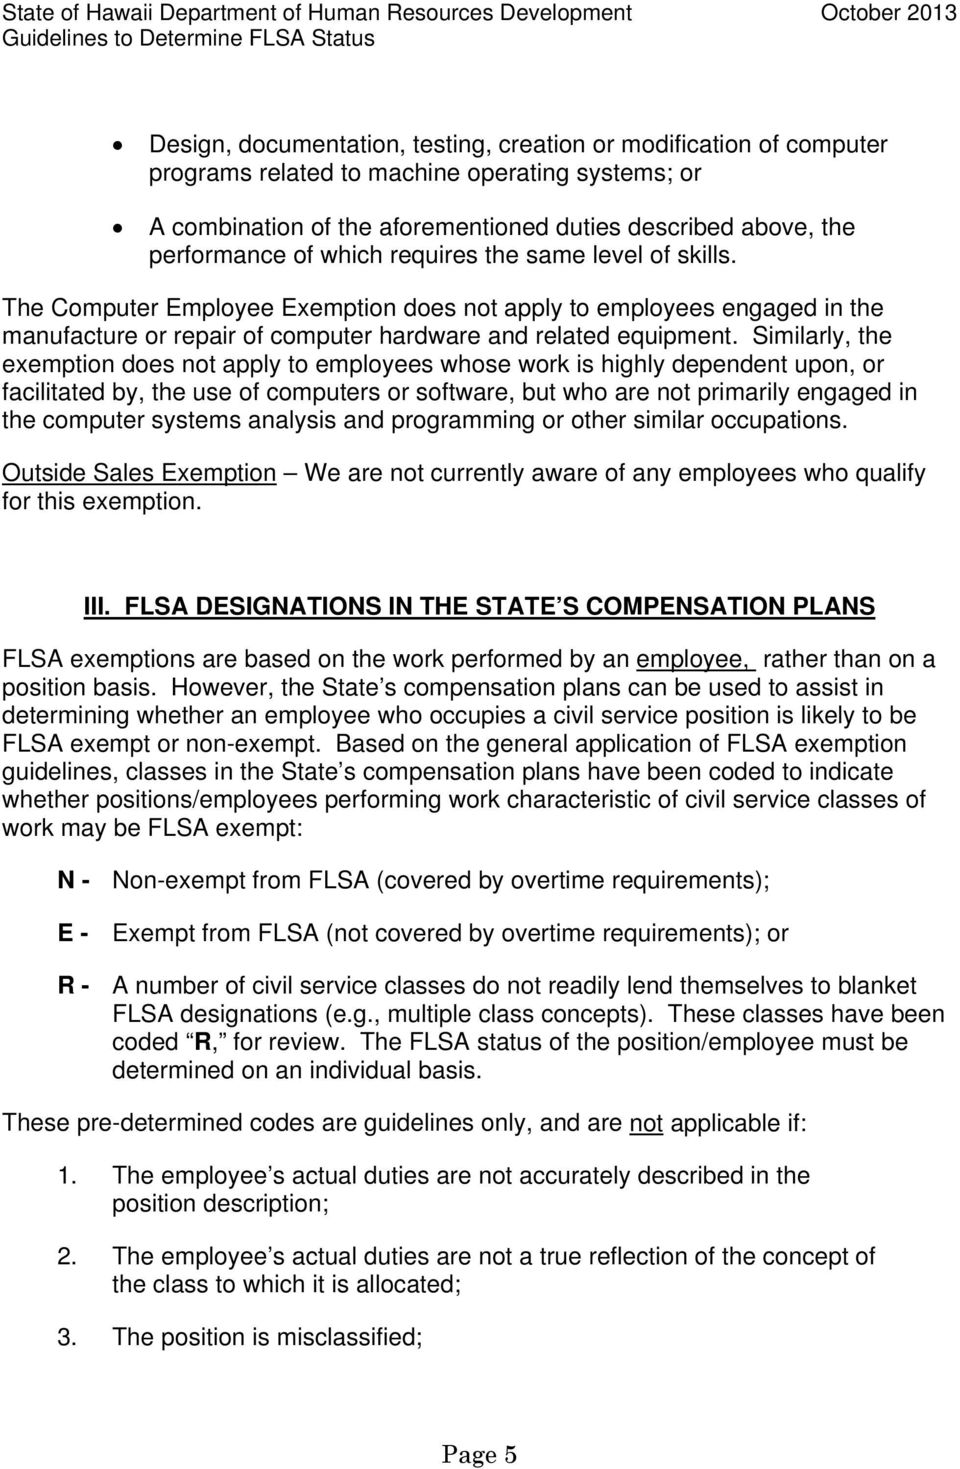 The Computer Employee Exemption does not apply to employees engaged in the manufacture or repair of computer hardware and related equipment.